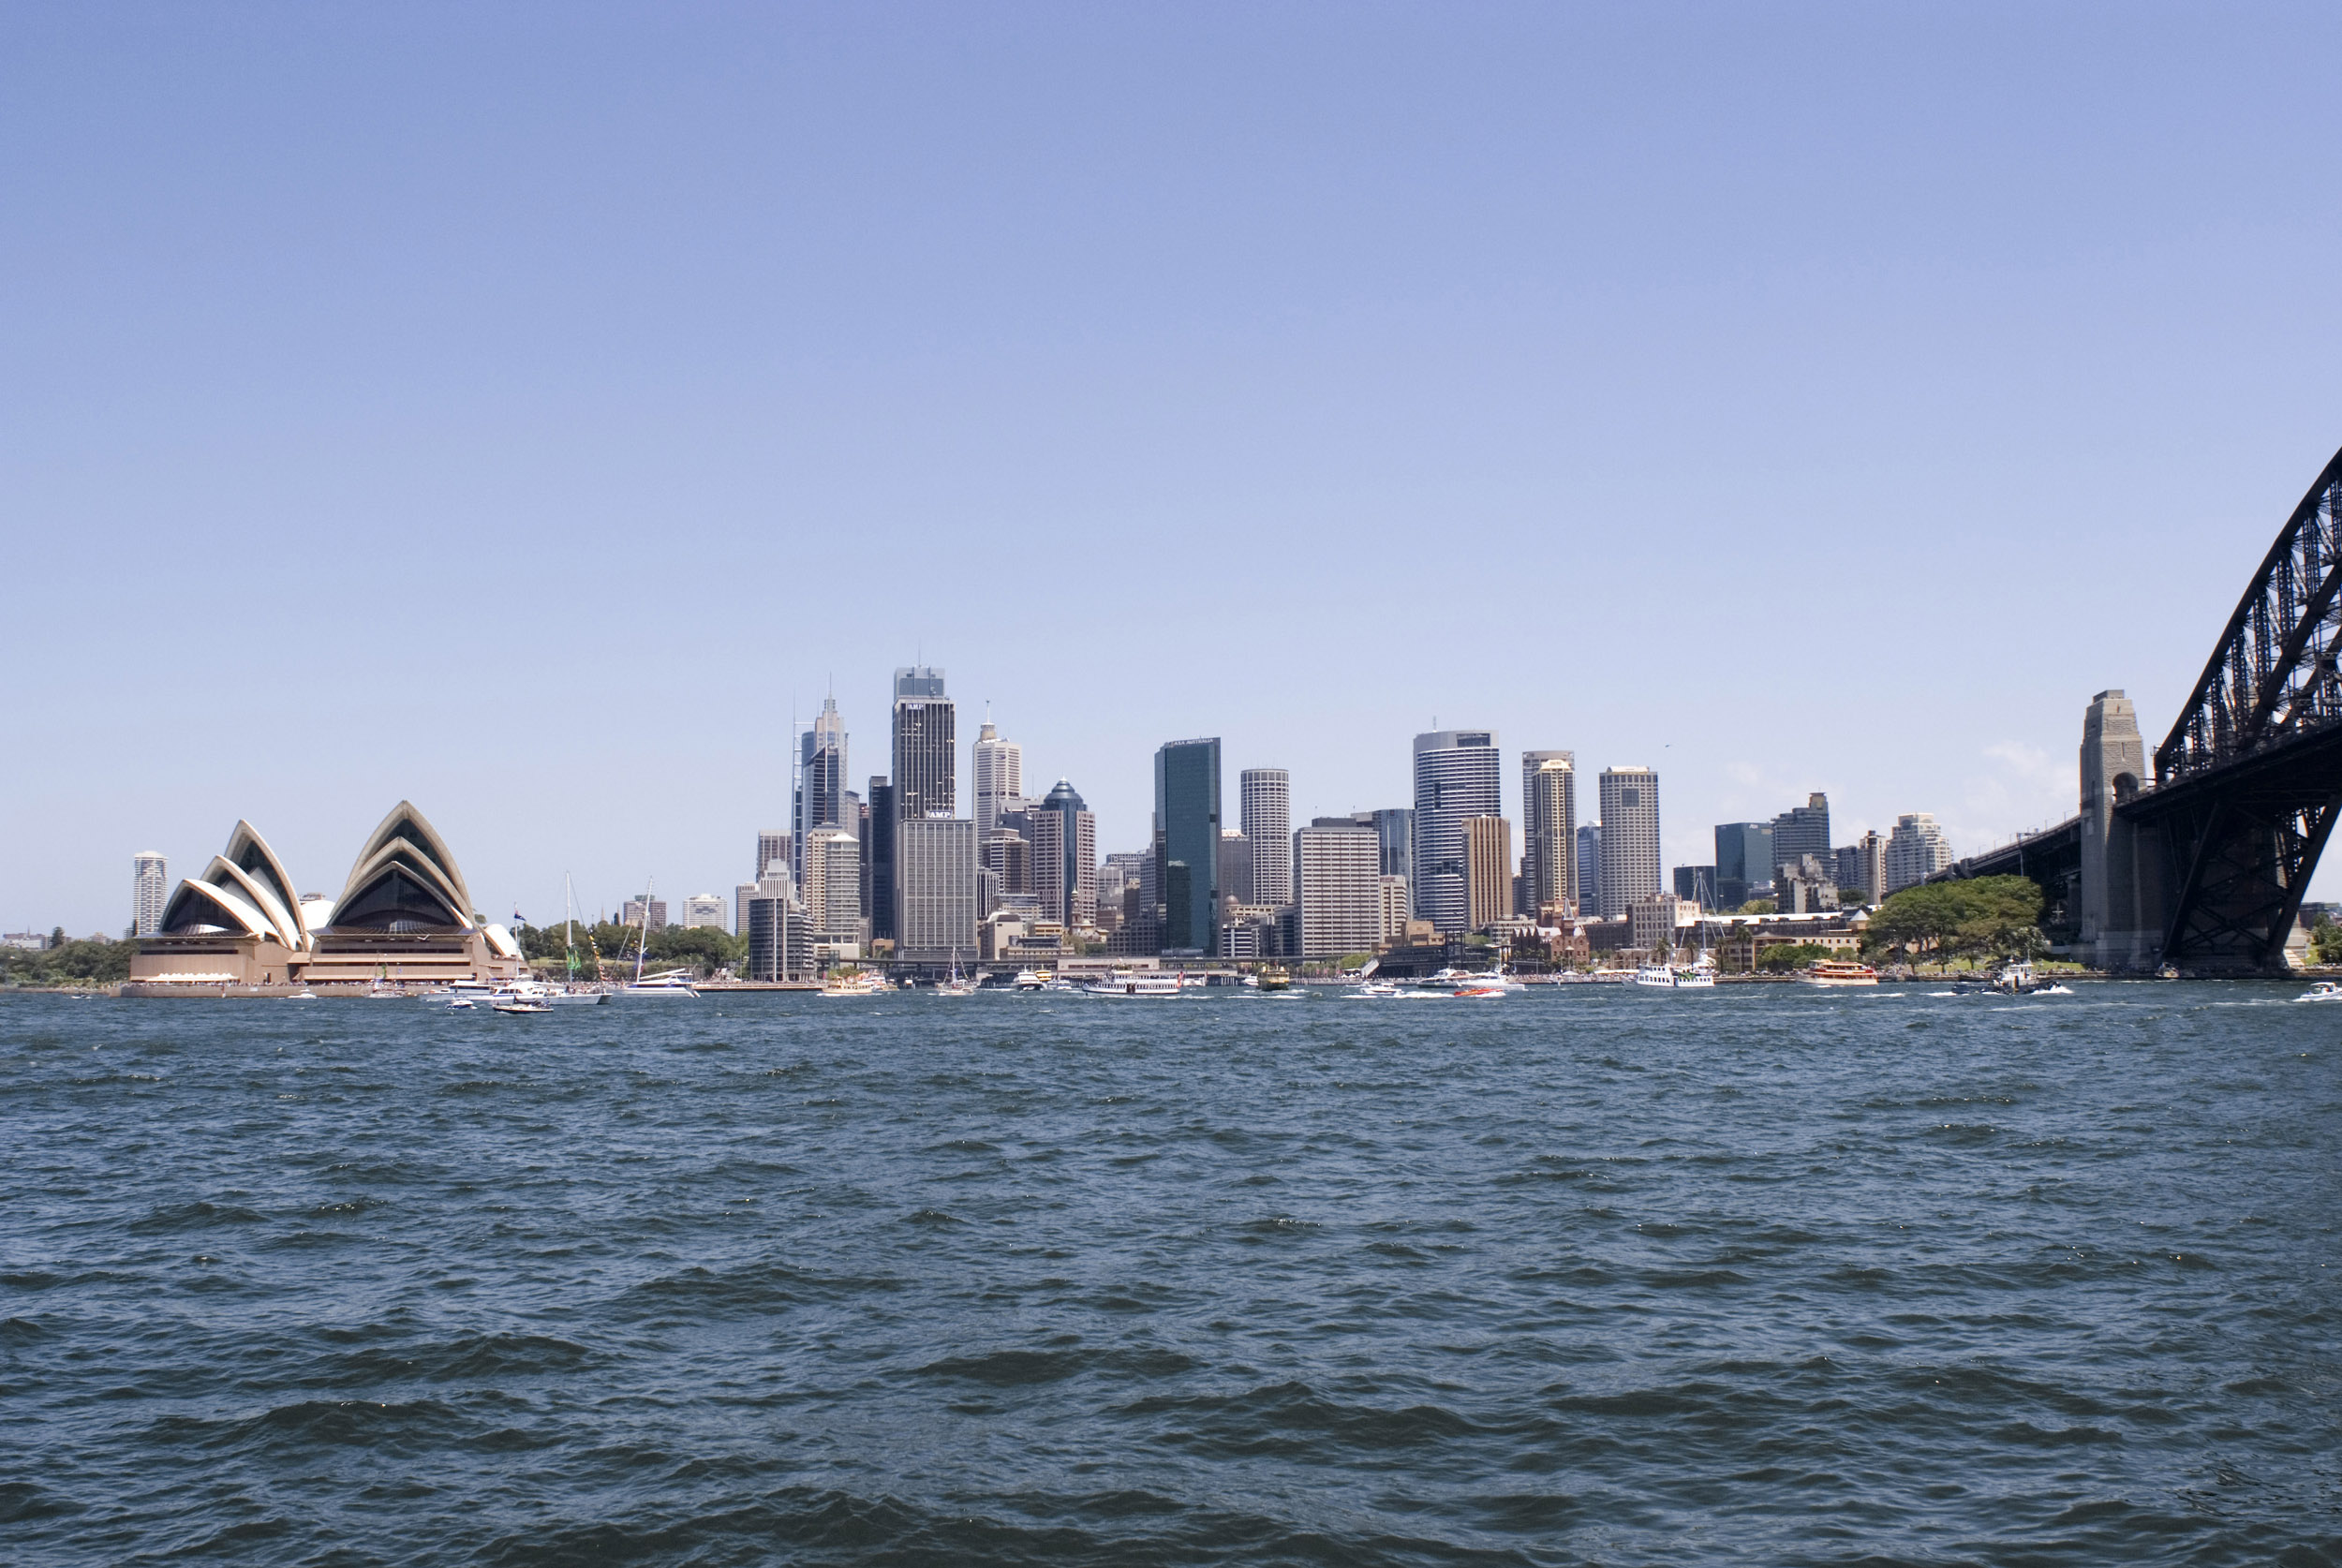 The Sydney CBD, Opera House and Circular Quay from the opposing bank of sydney harbour, port jackson